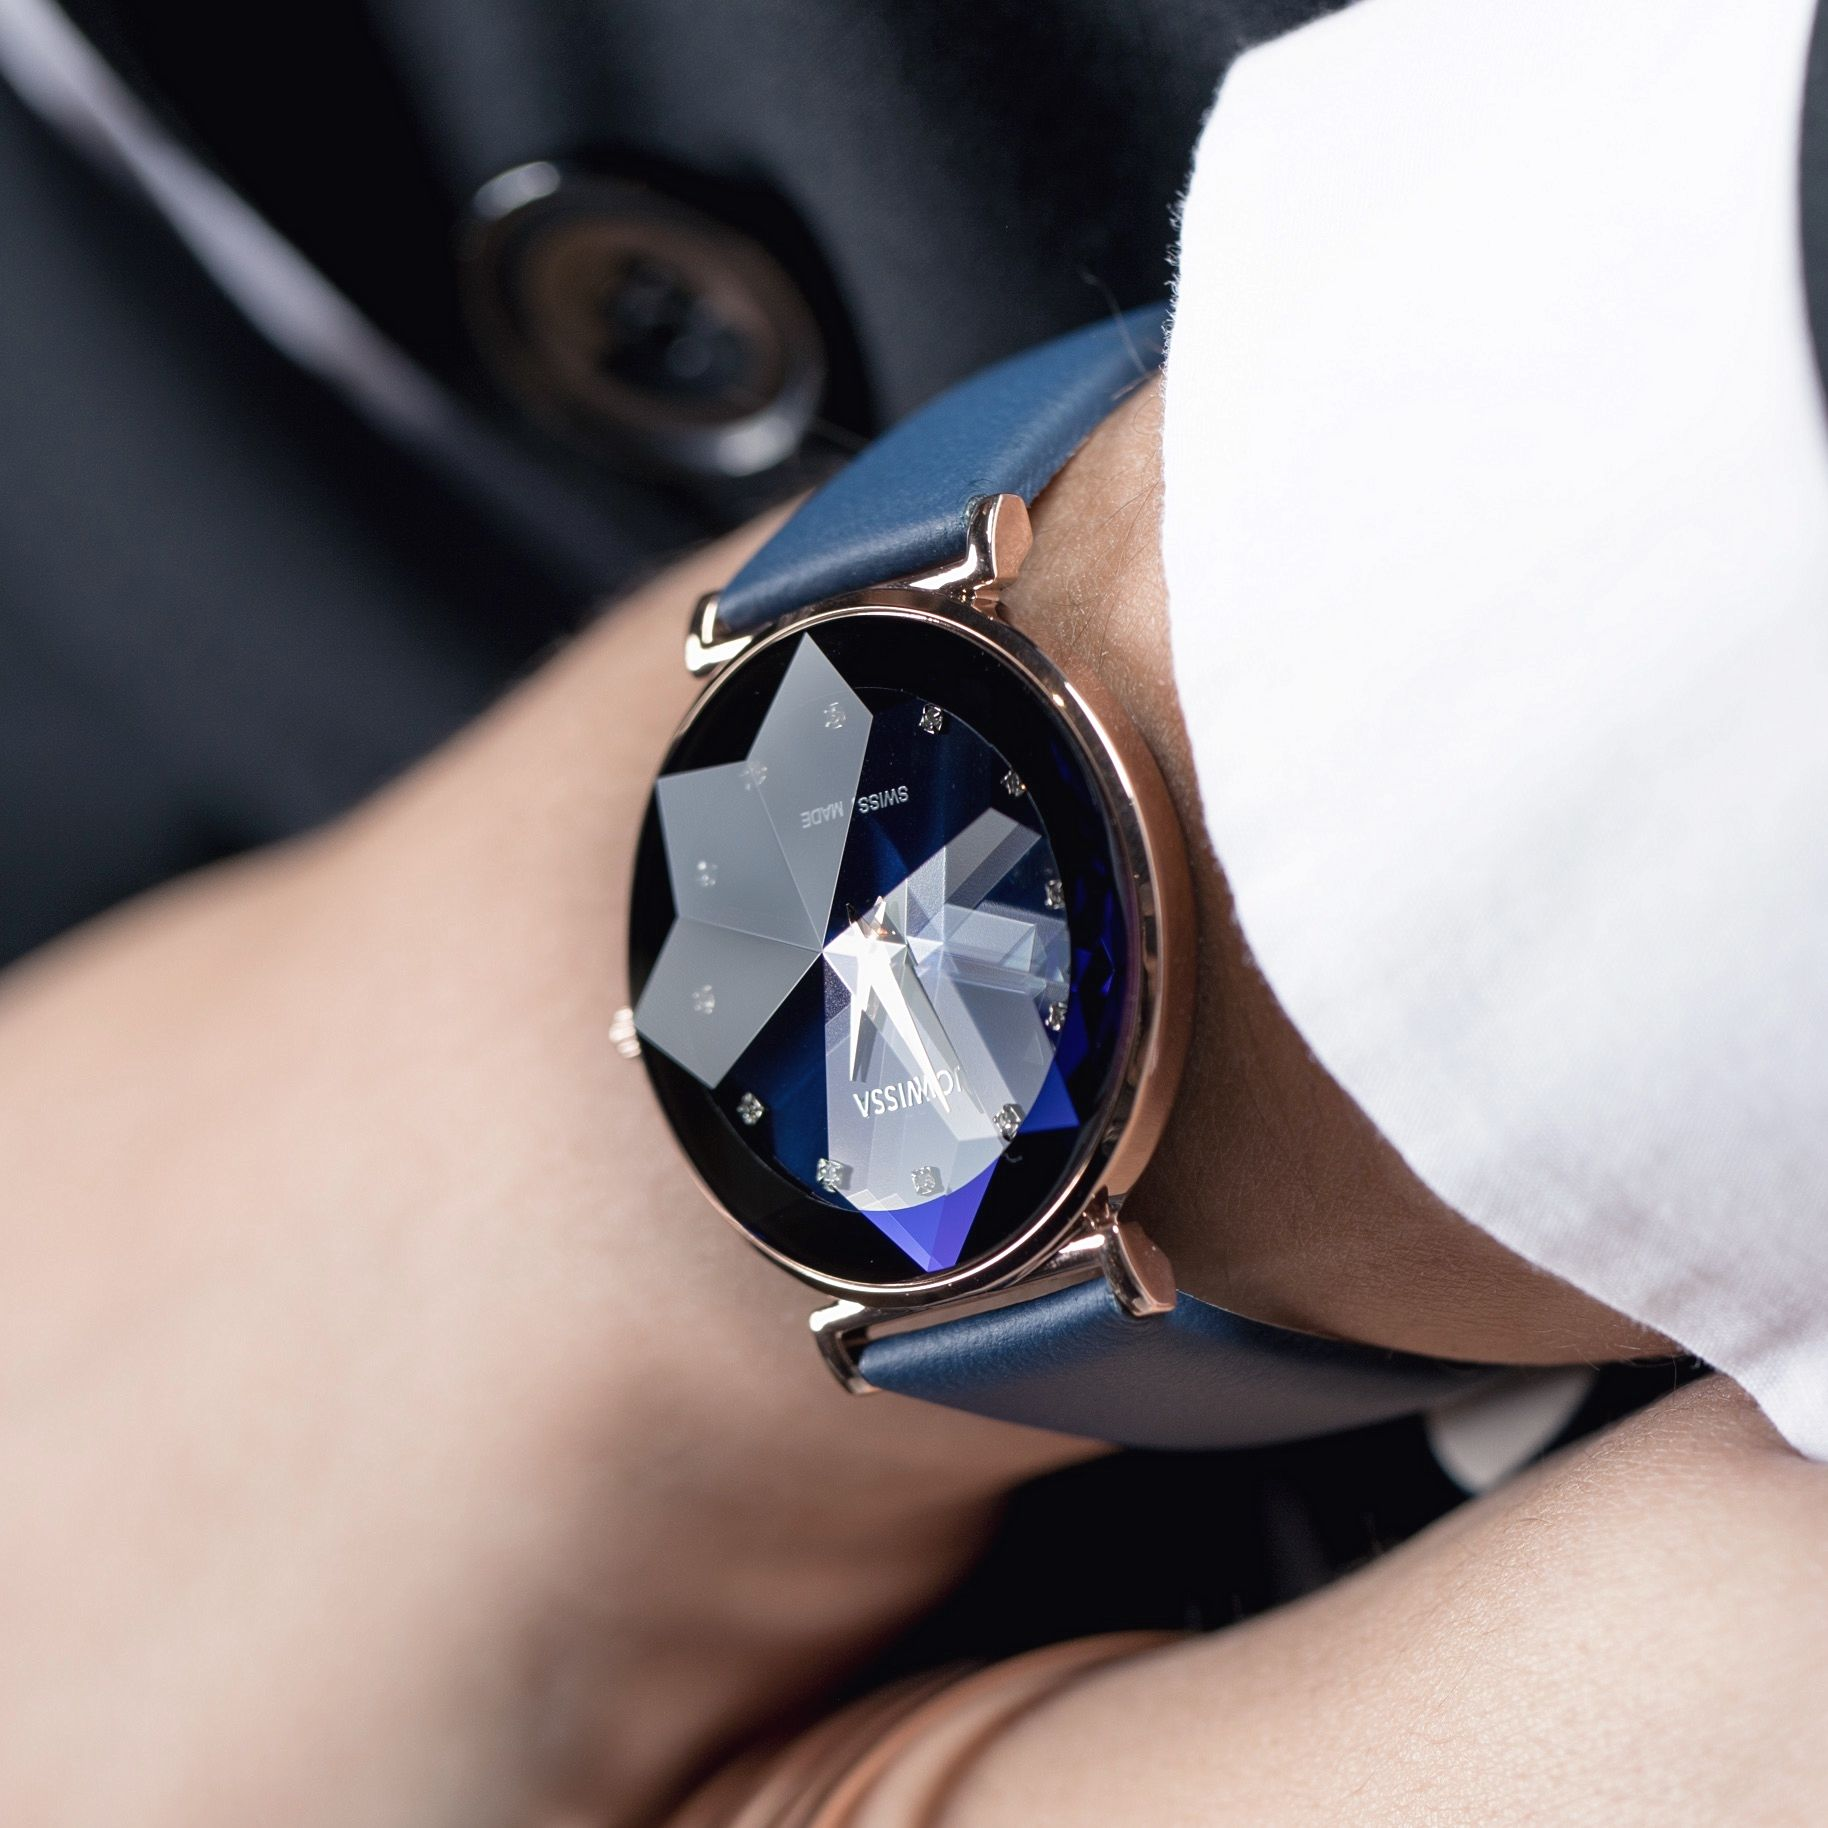 a86c1eff454 Add some shine to your wrist with our blue Facet. - Jowissa watch ...